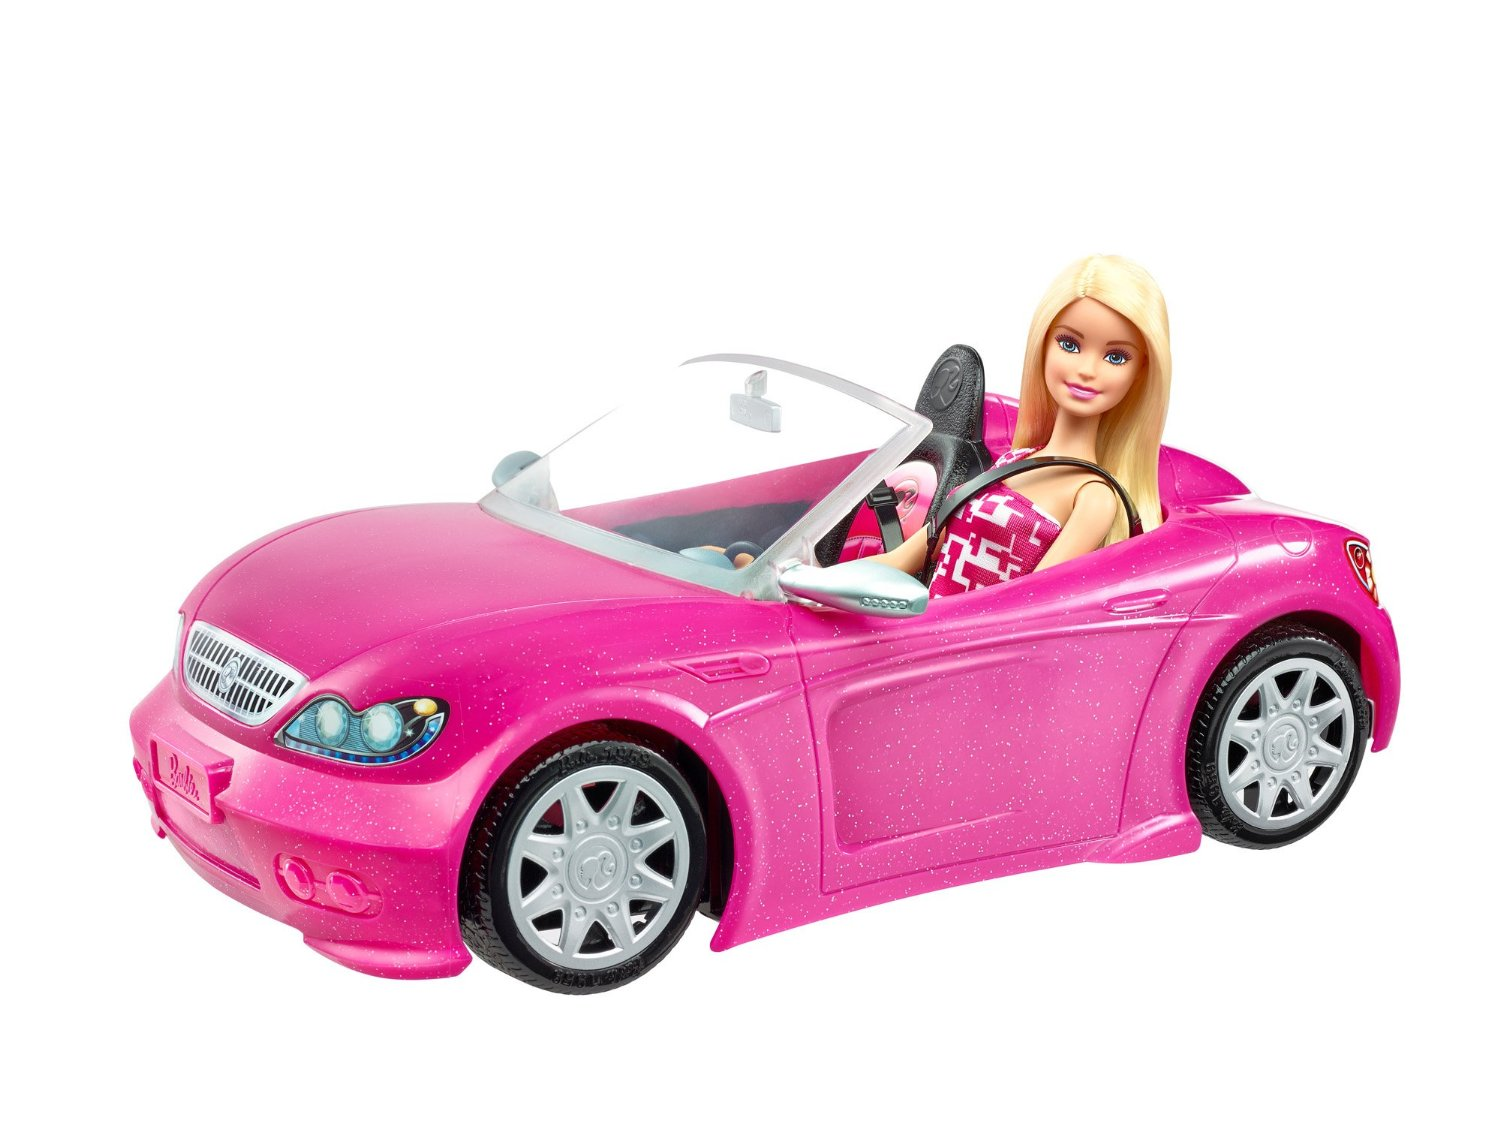 Barbie And Convertible Car Barbie Doll Friends And